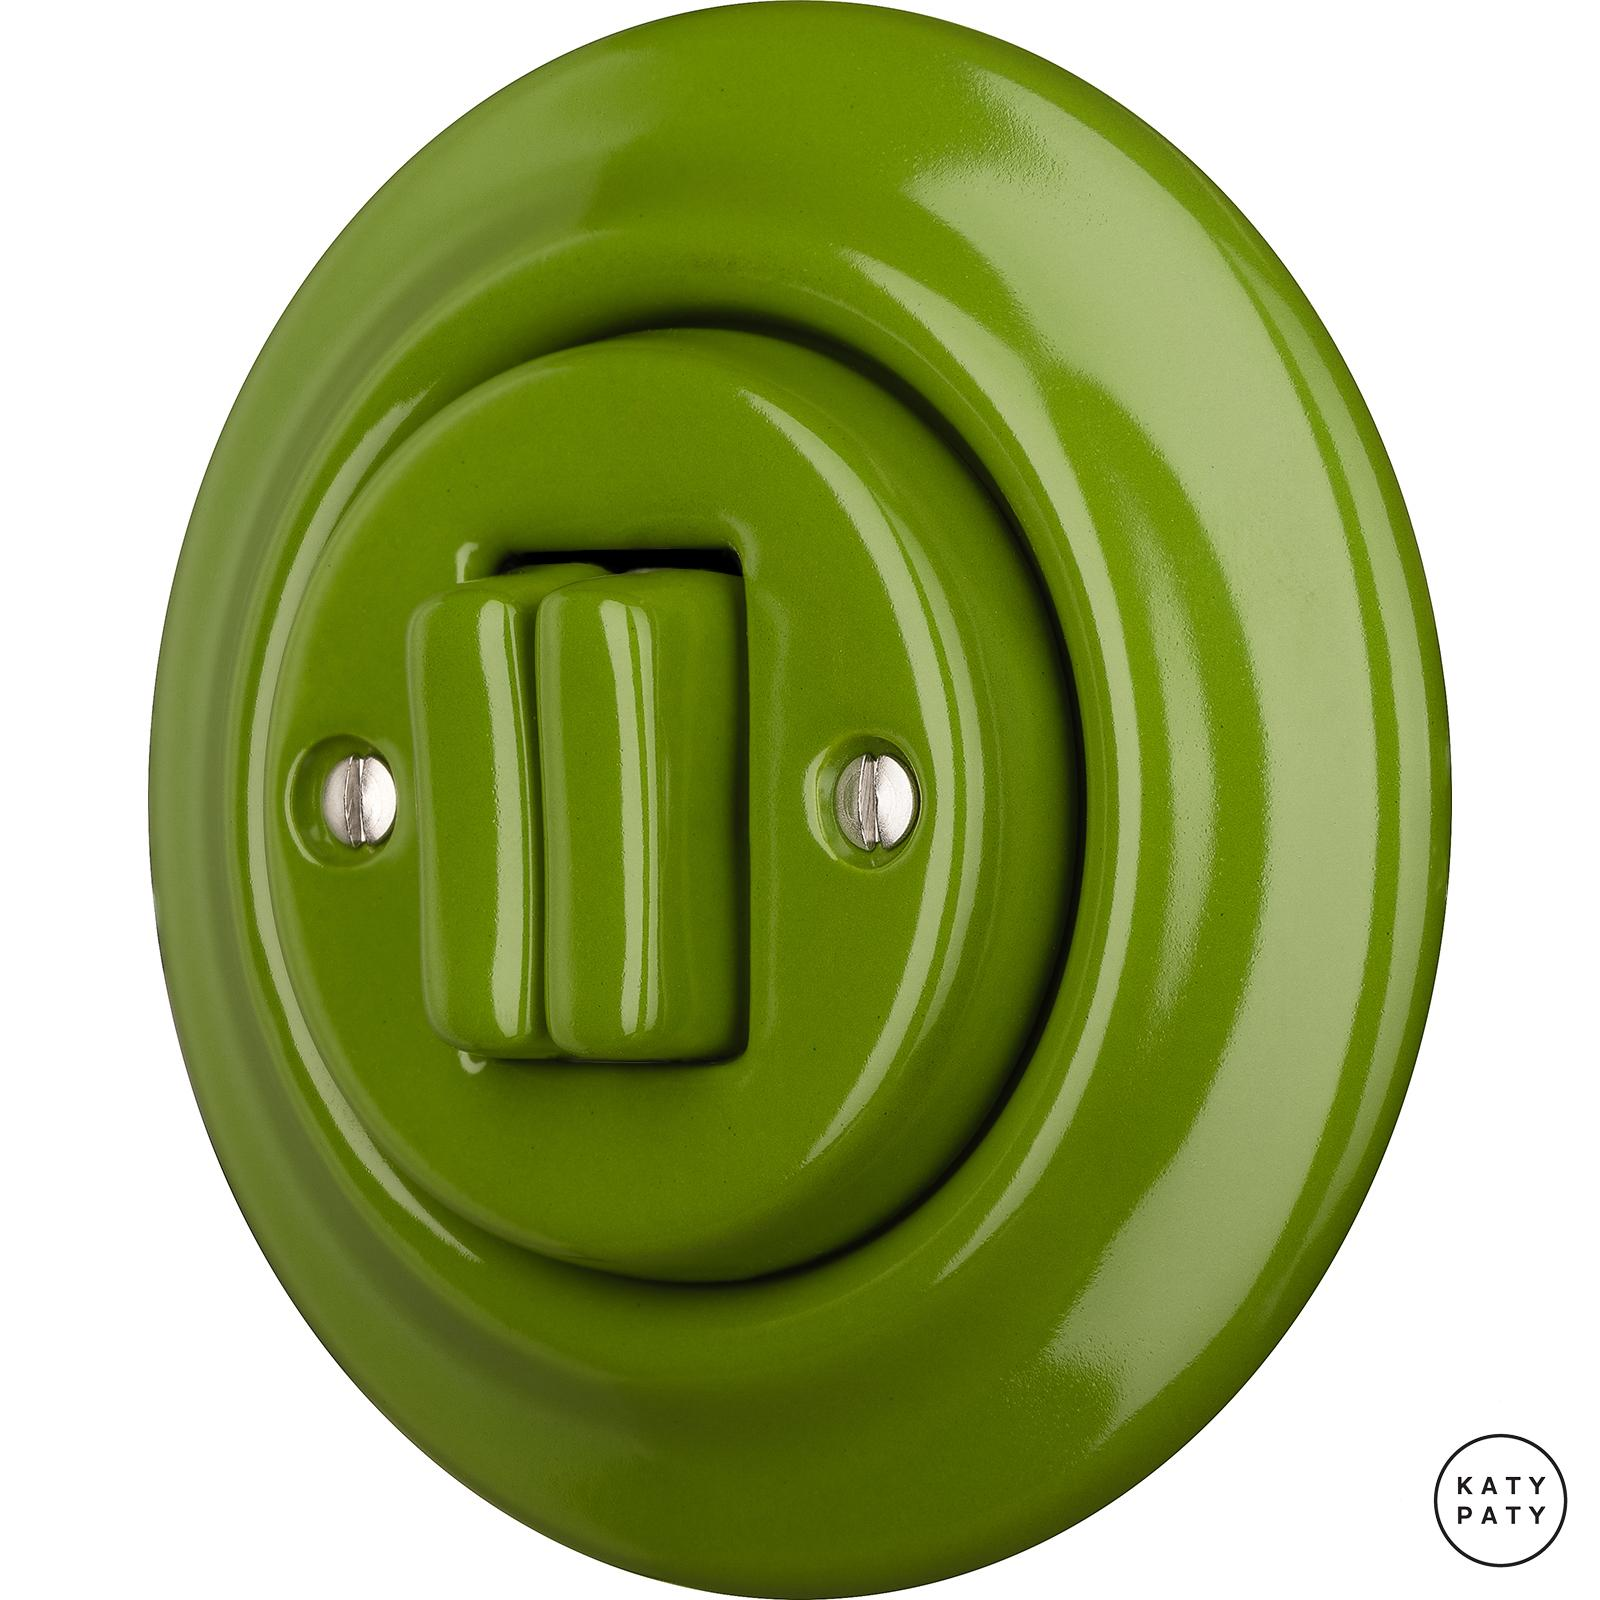 Porcelain switches - a 2 gang ()  - NITOR CHLORA | Katy Paty